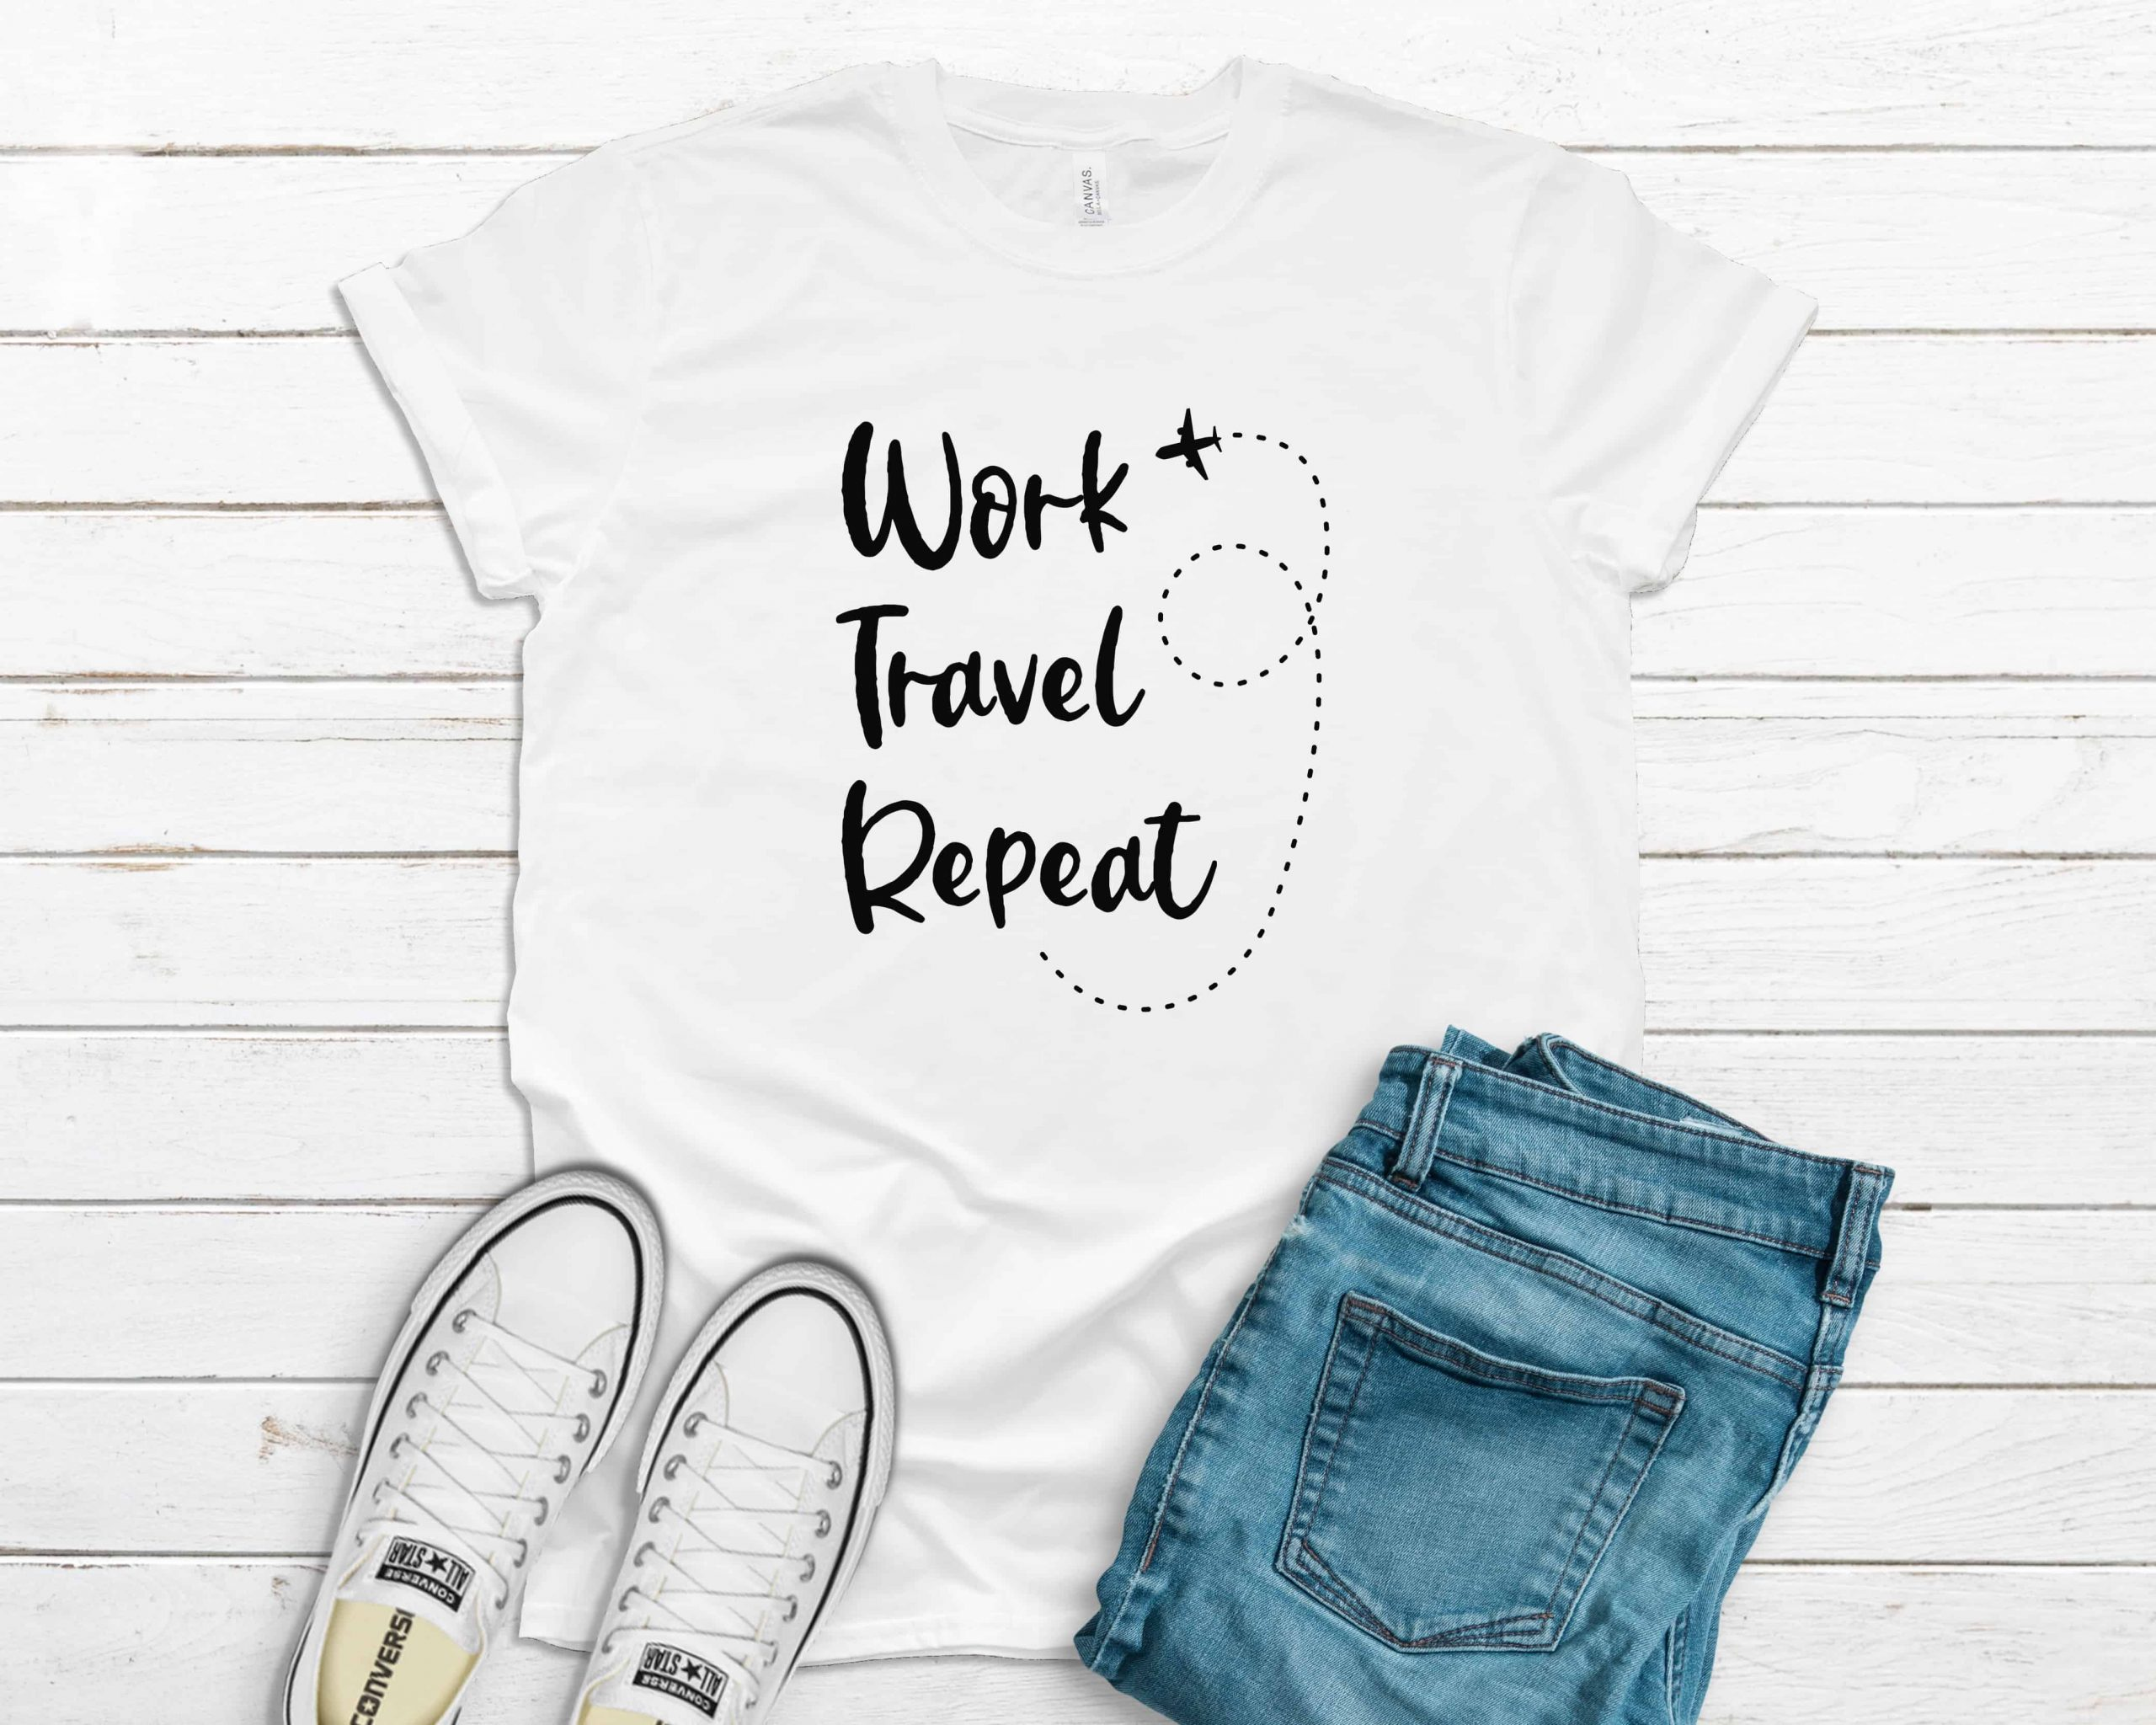 Work Travel Repeat t-shirt white color